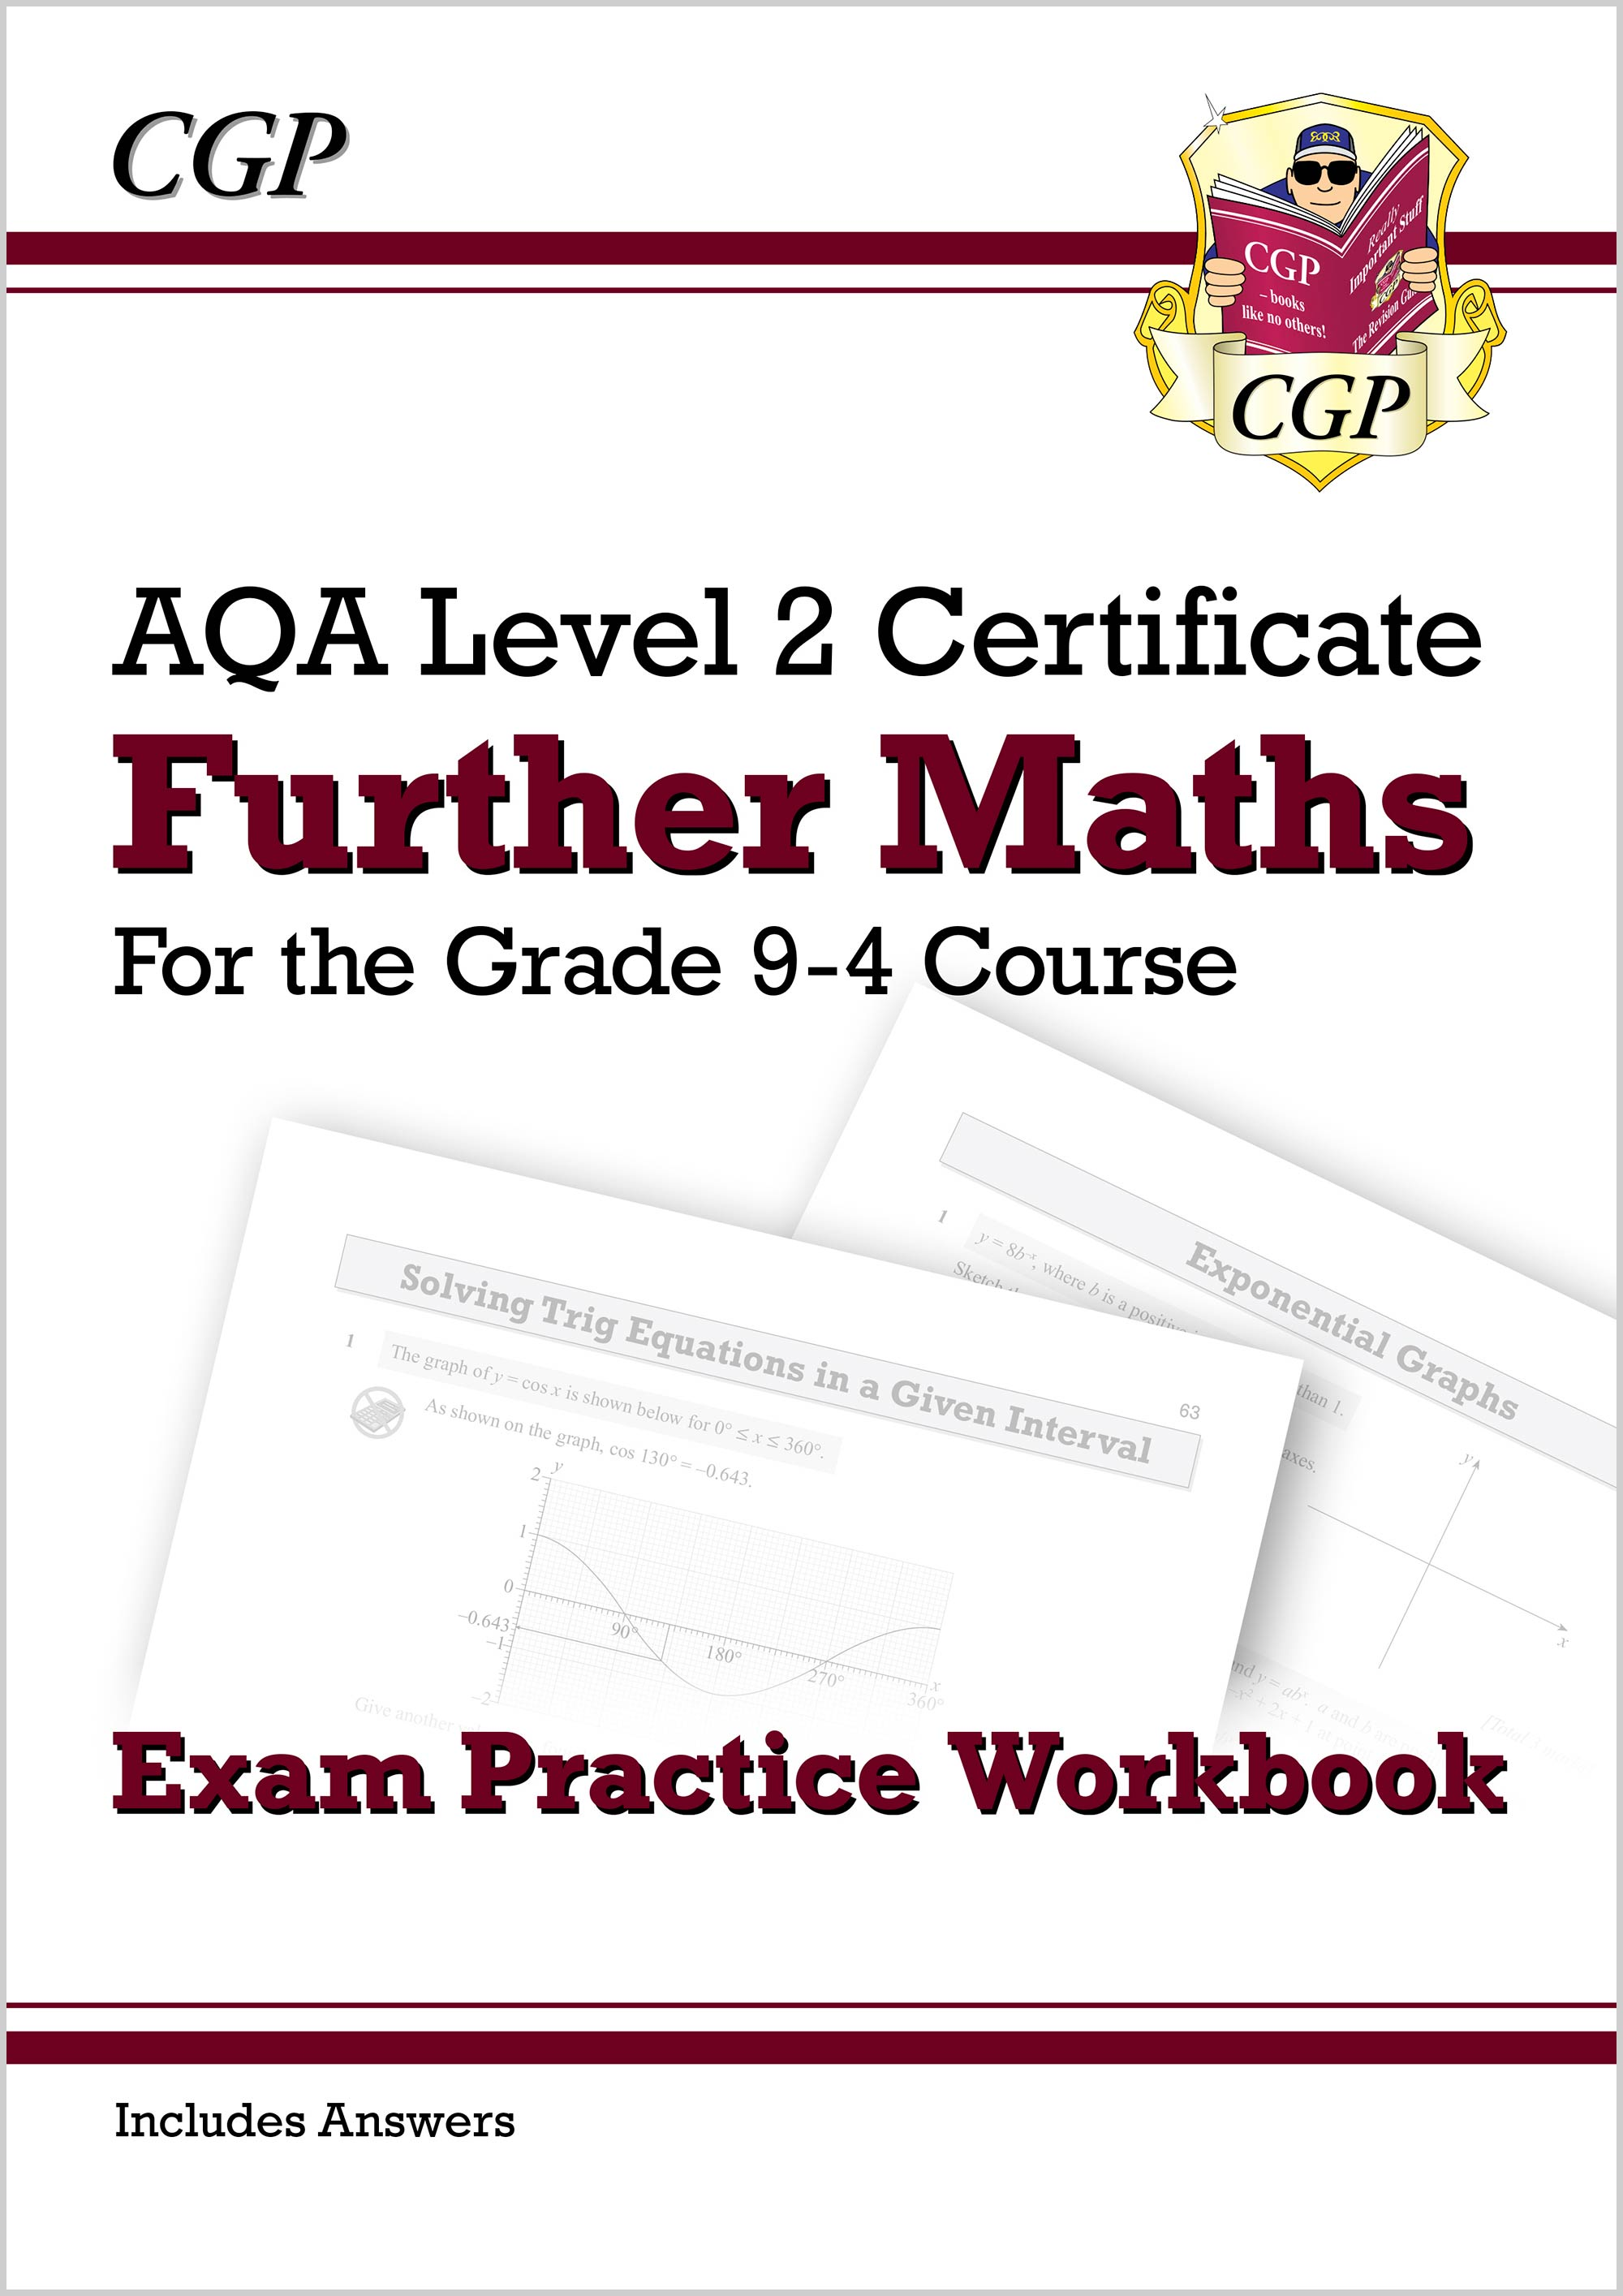 MAQI42DK - Grade 9-4 AQA Level 2 Certificate: Further Maths - Exam Practice Workbook (with Ans)